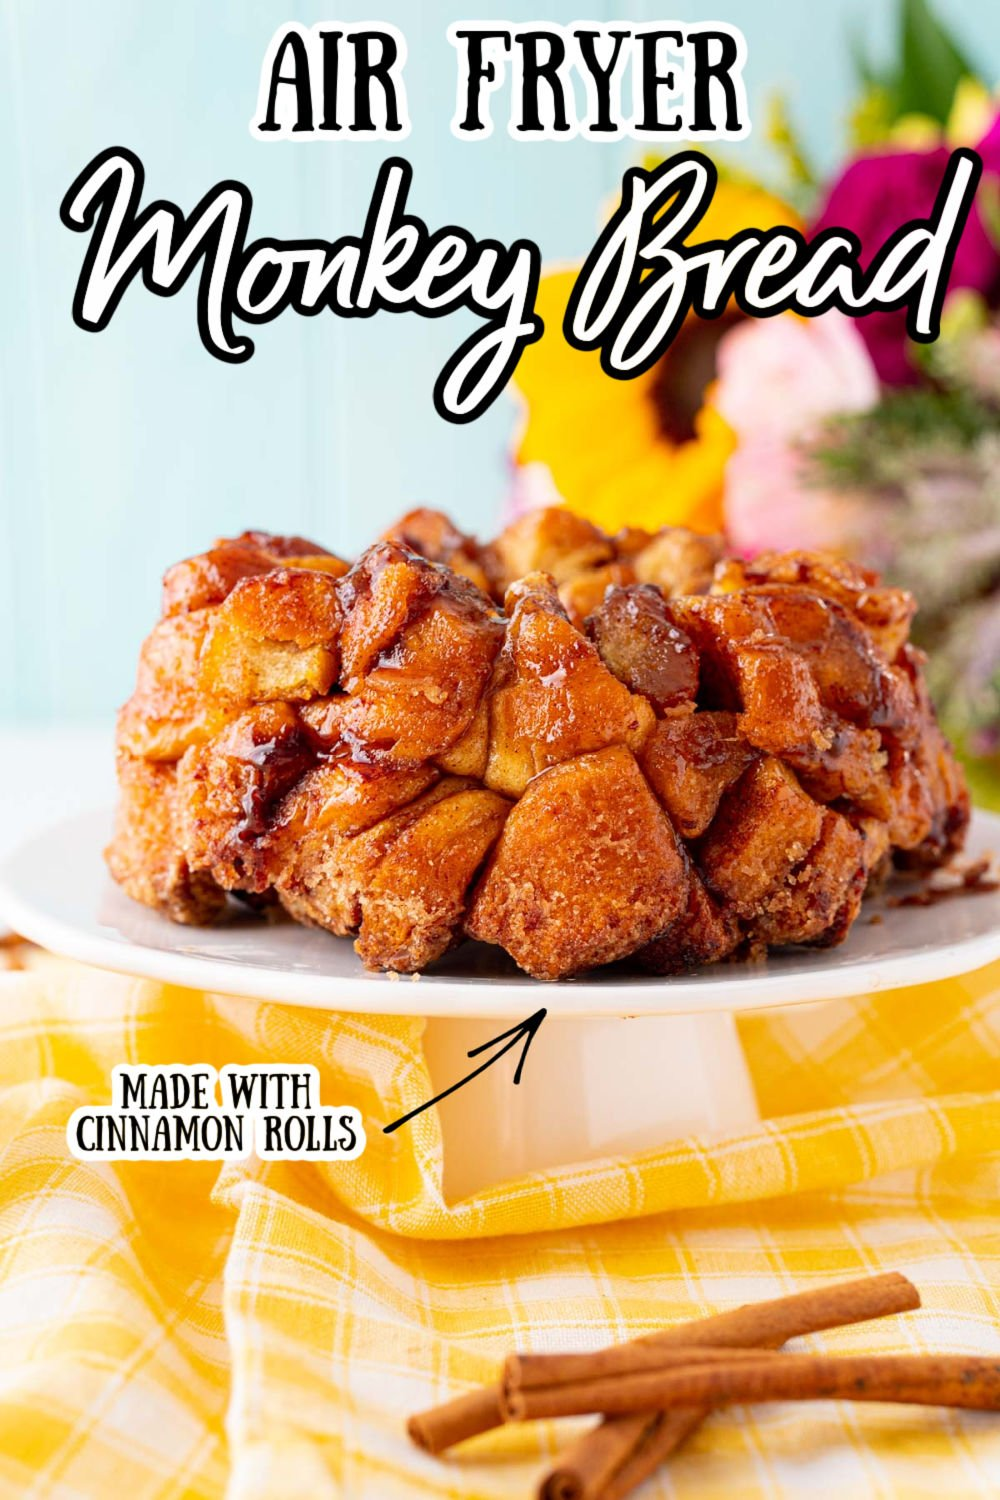 Air Fryer Monkey Bread uses canned cinnamon rolls and 4 more ingredients to deliver a lightly crisped sweet treat that cooks in 15 minutes! via @sugarandsoulco